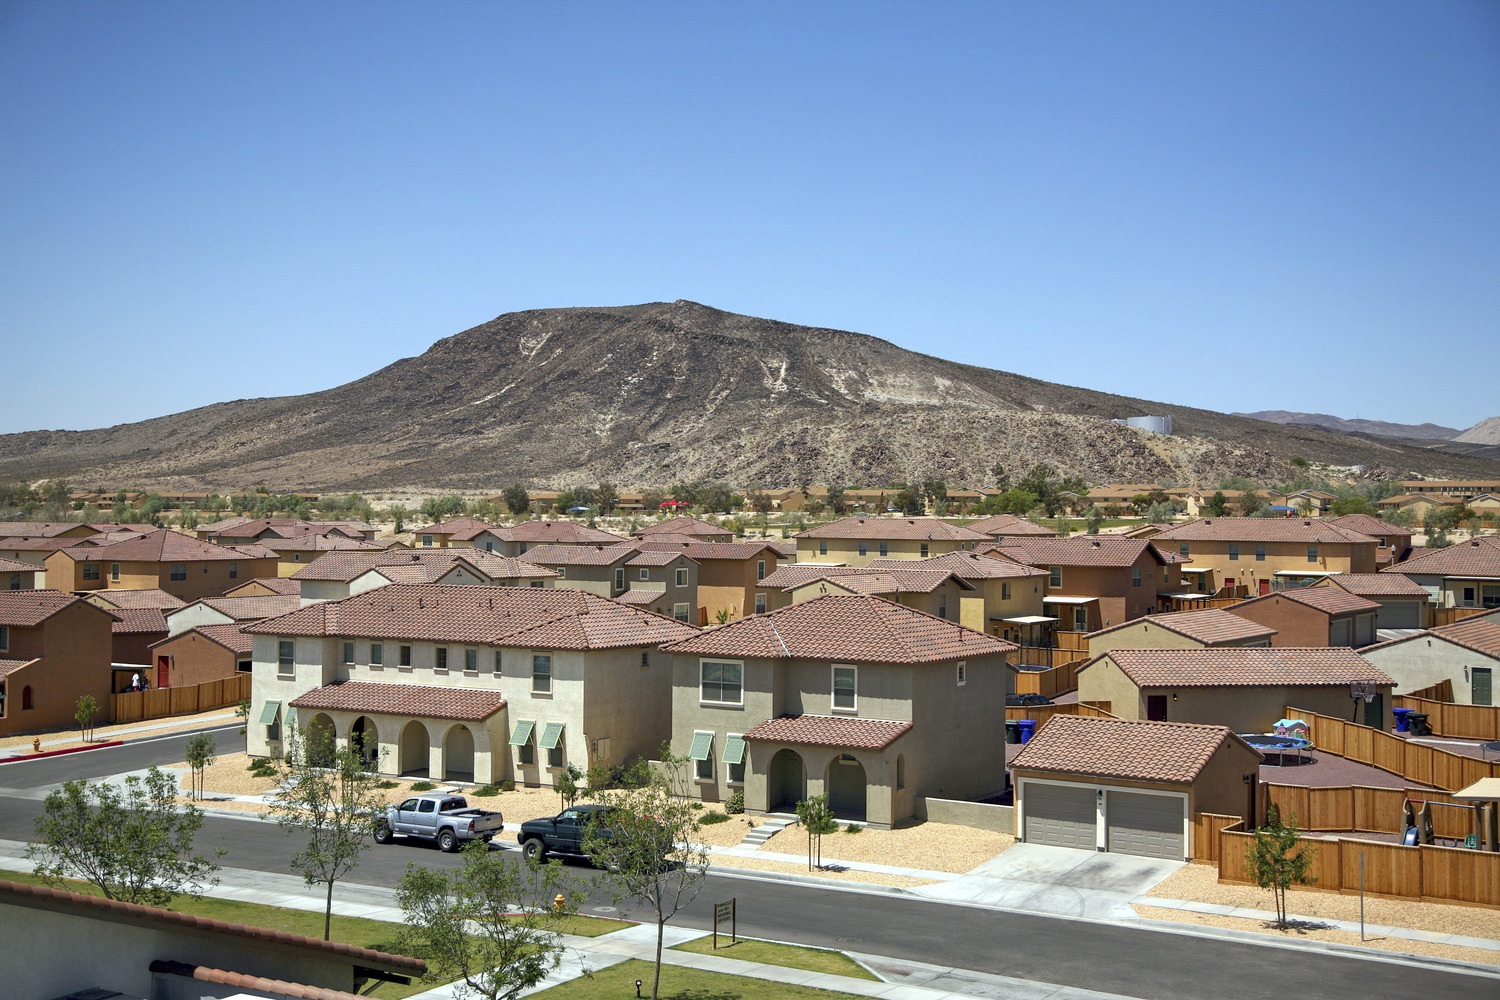 CBG builds The Villages at Fort Irwin, a 807 New Military Homes and 200 Senior Unaccompanied Housing Units in Fort Irwin, CA - Image #3